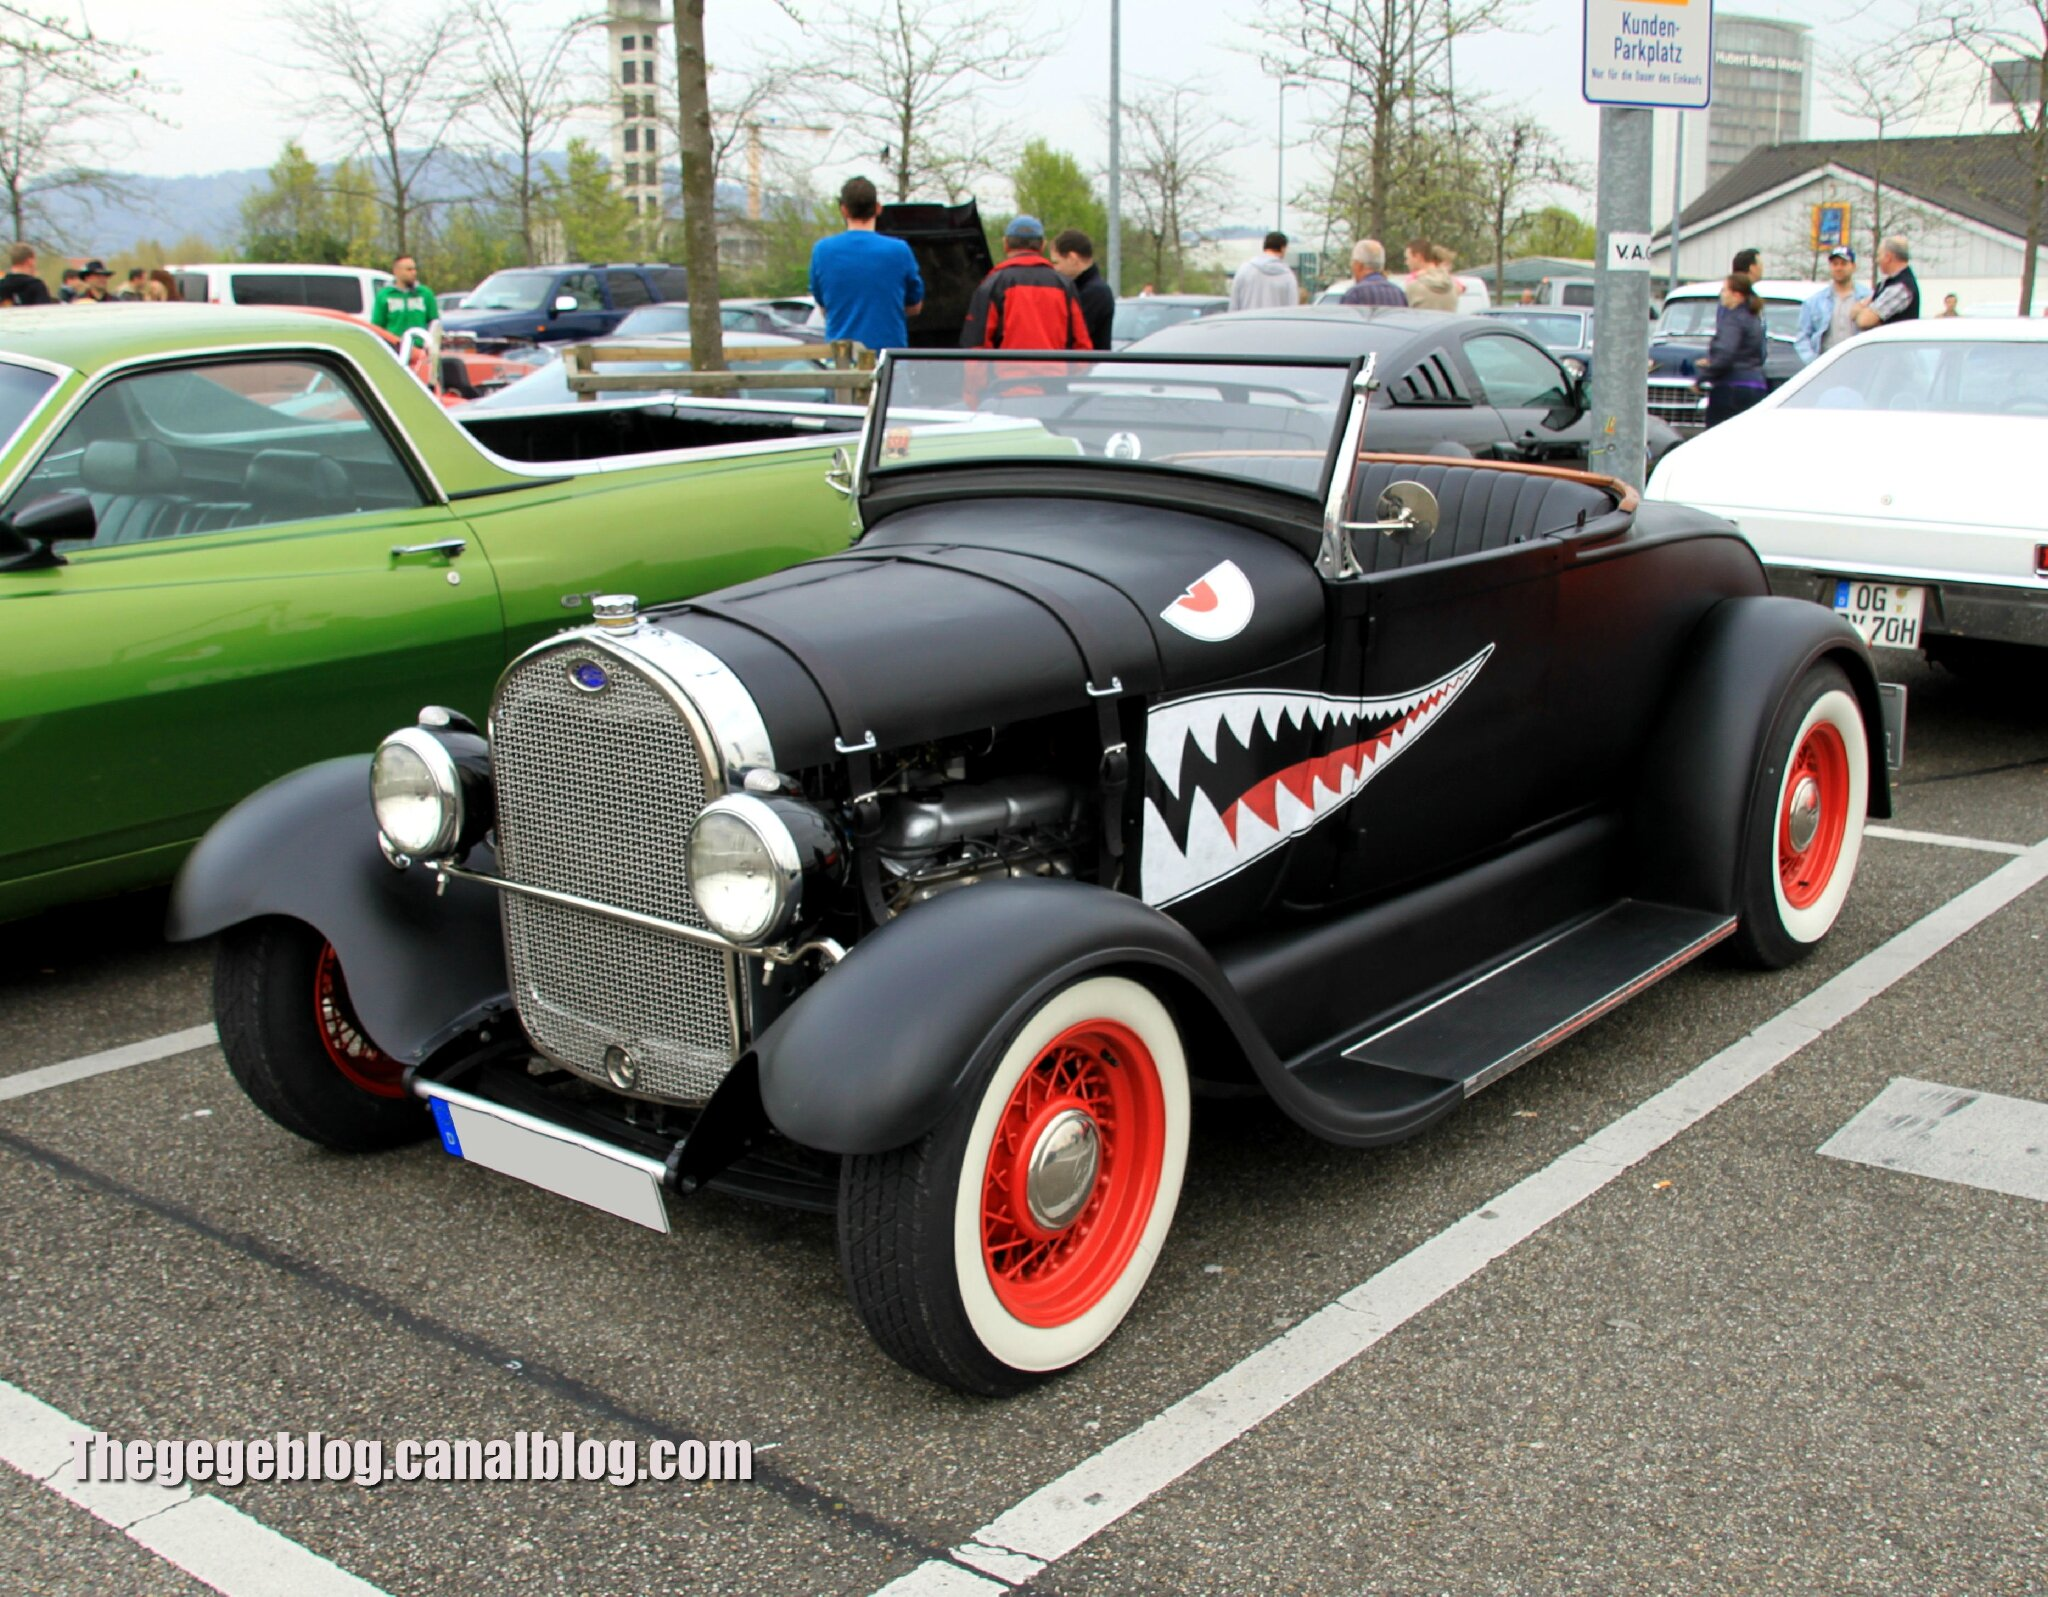 Ford roadster de 1929 (Rencard Burger King avril 2014) 01